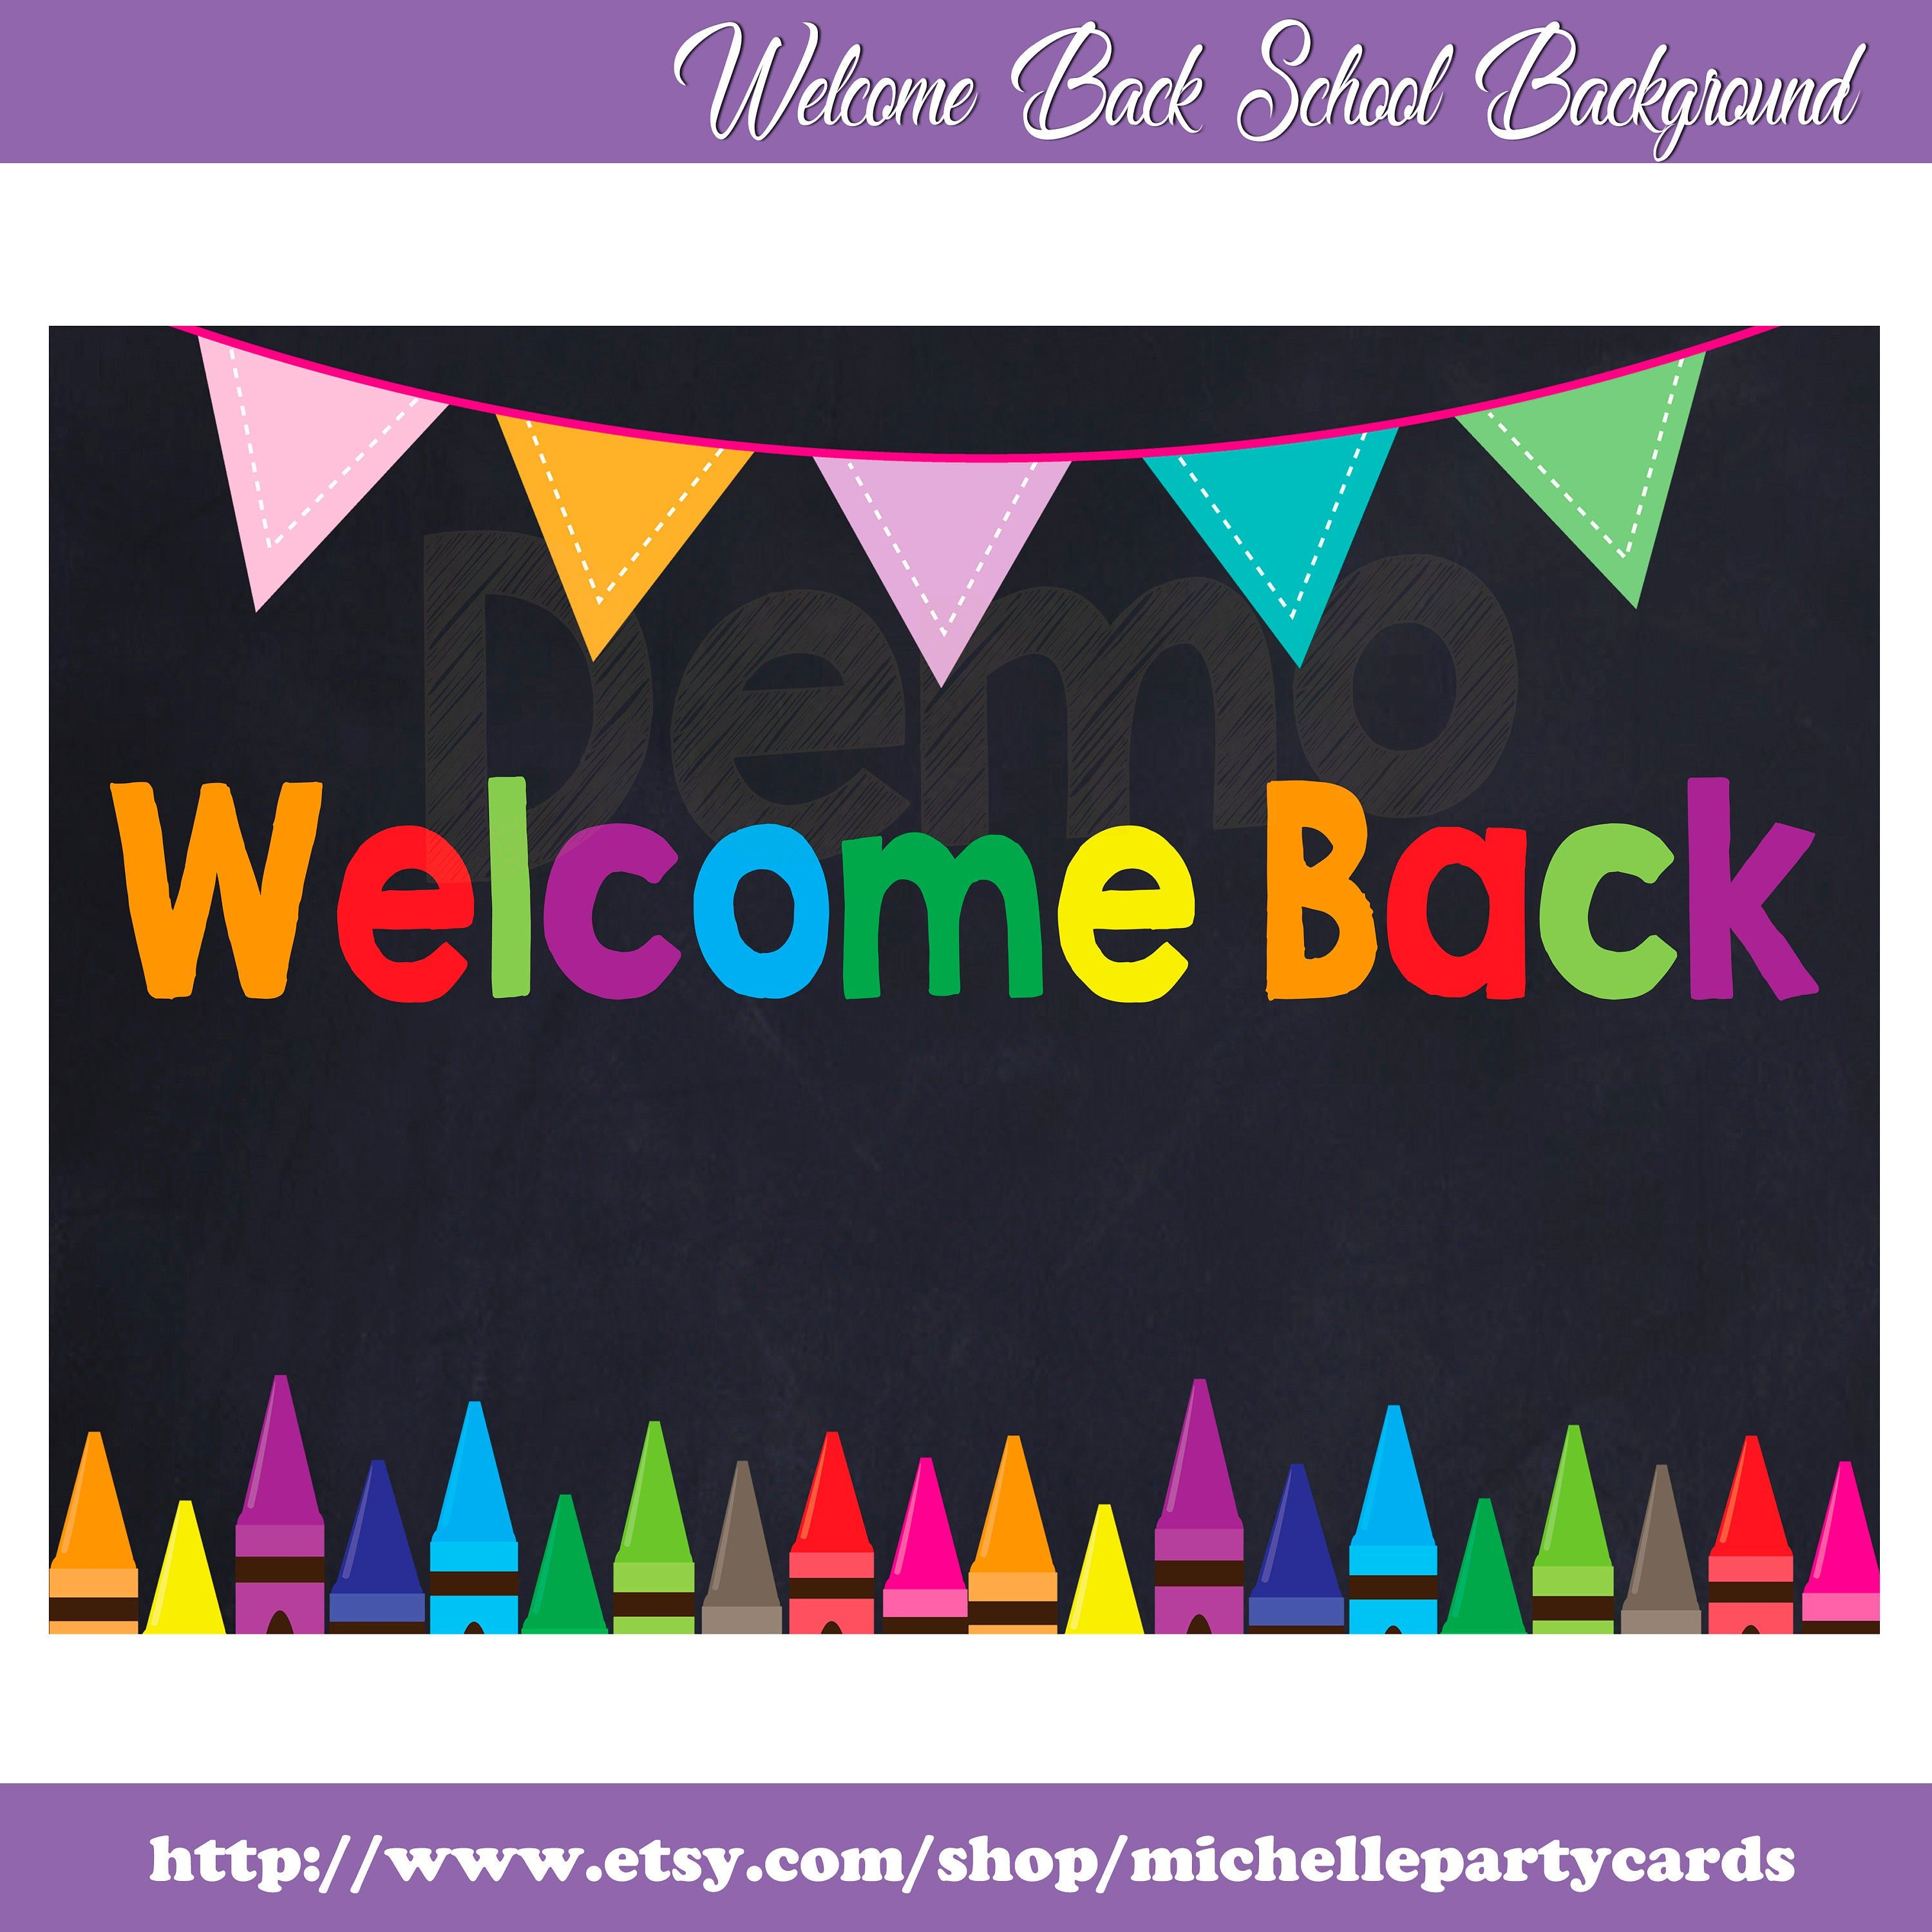 Welcome Back School Background Welcome Back School Banner Welcome Banner School Banner Welcome Banner Welcome Back Banner